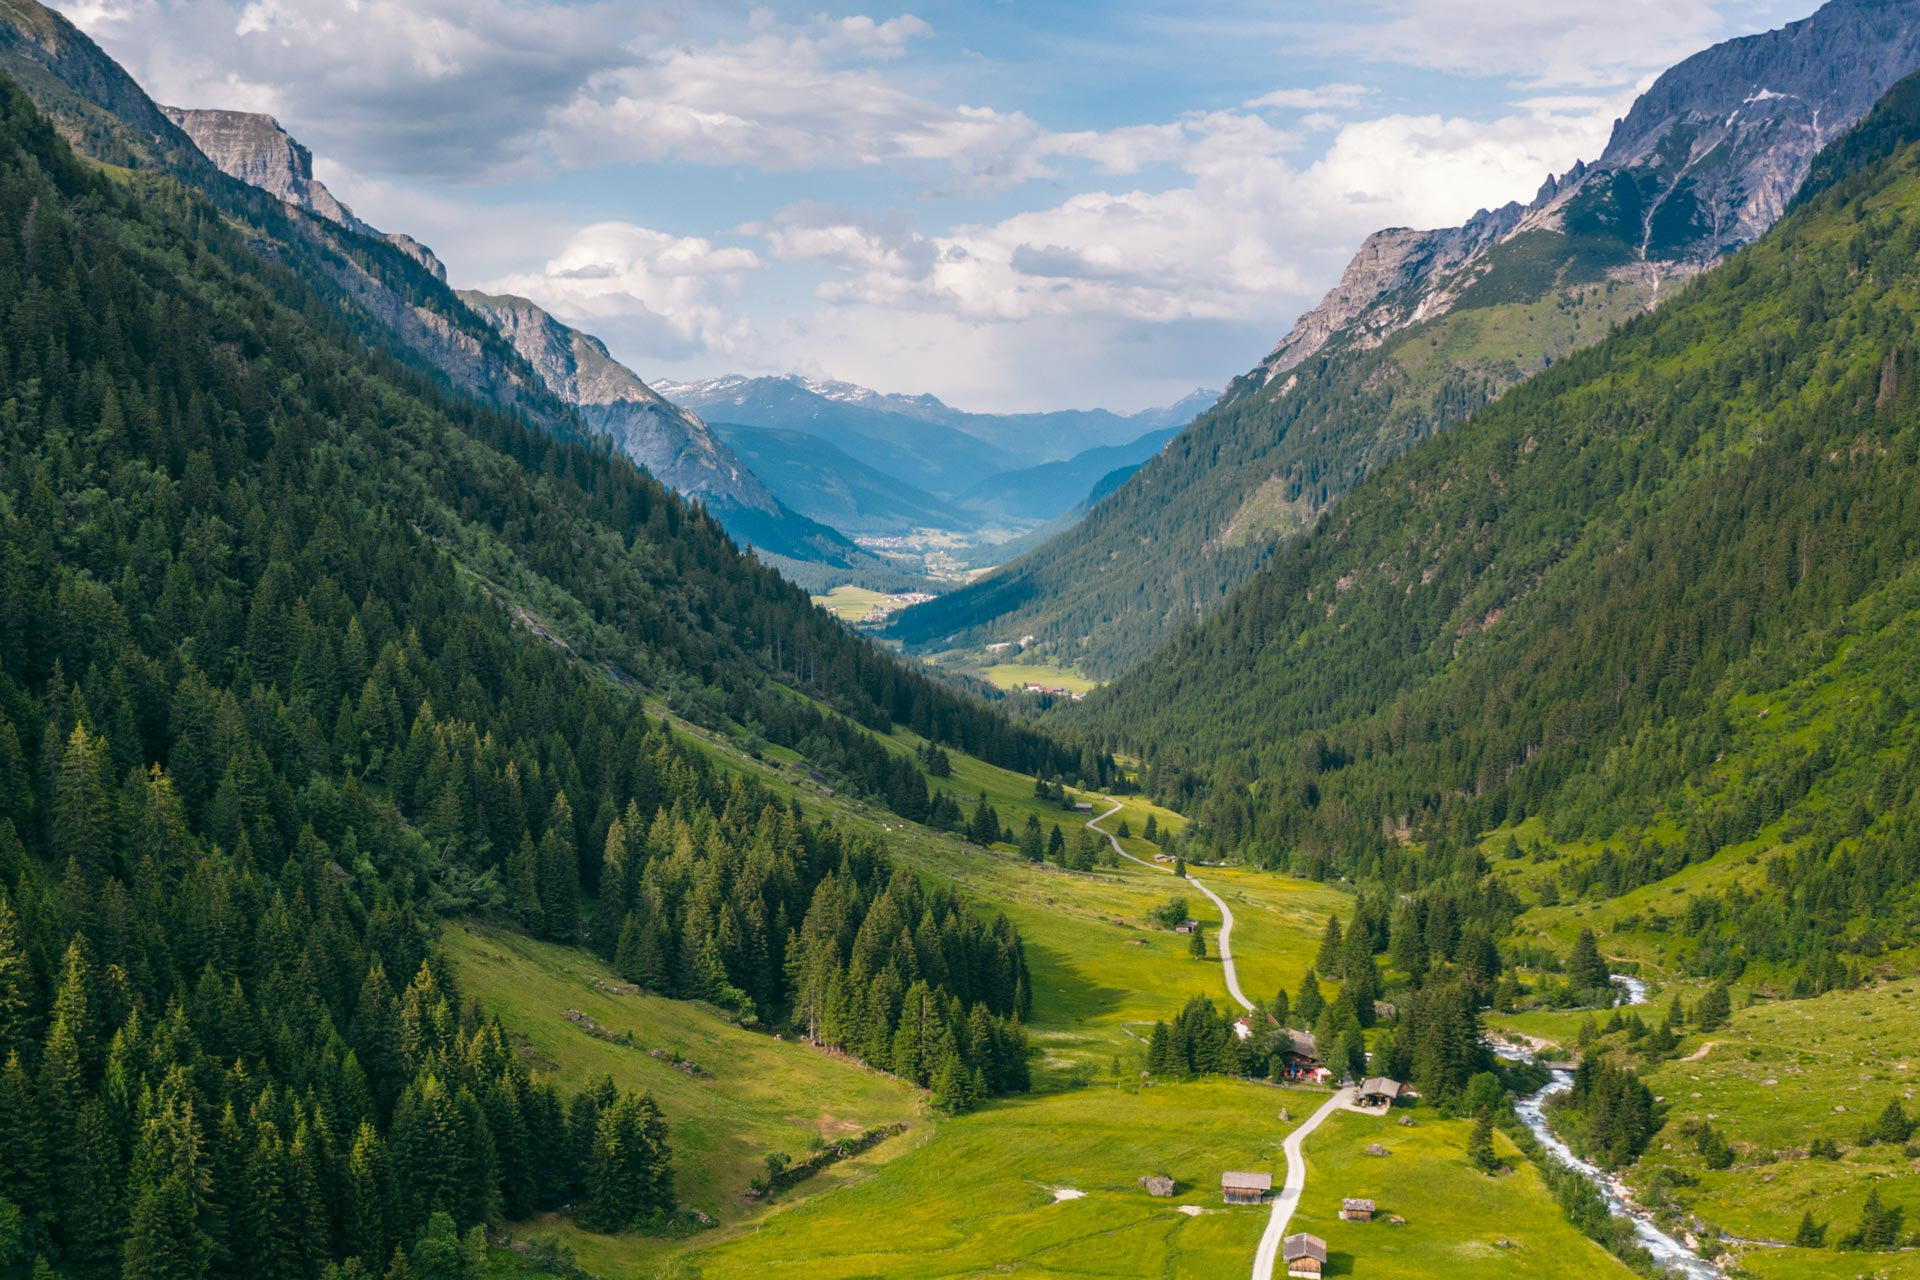 A Complete Travel Guide to Wipptal, Austria: 10 Best Things to Do in the Wonderous Valleys in Summer